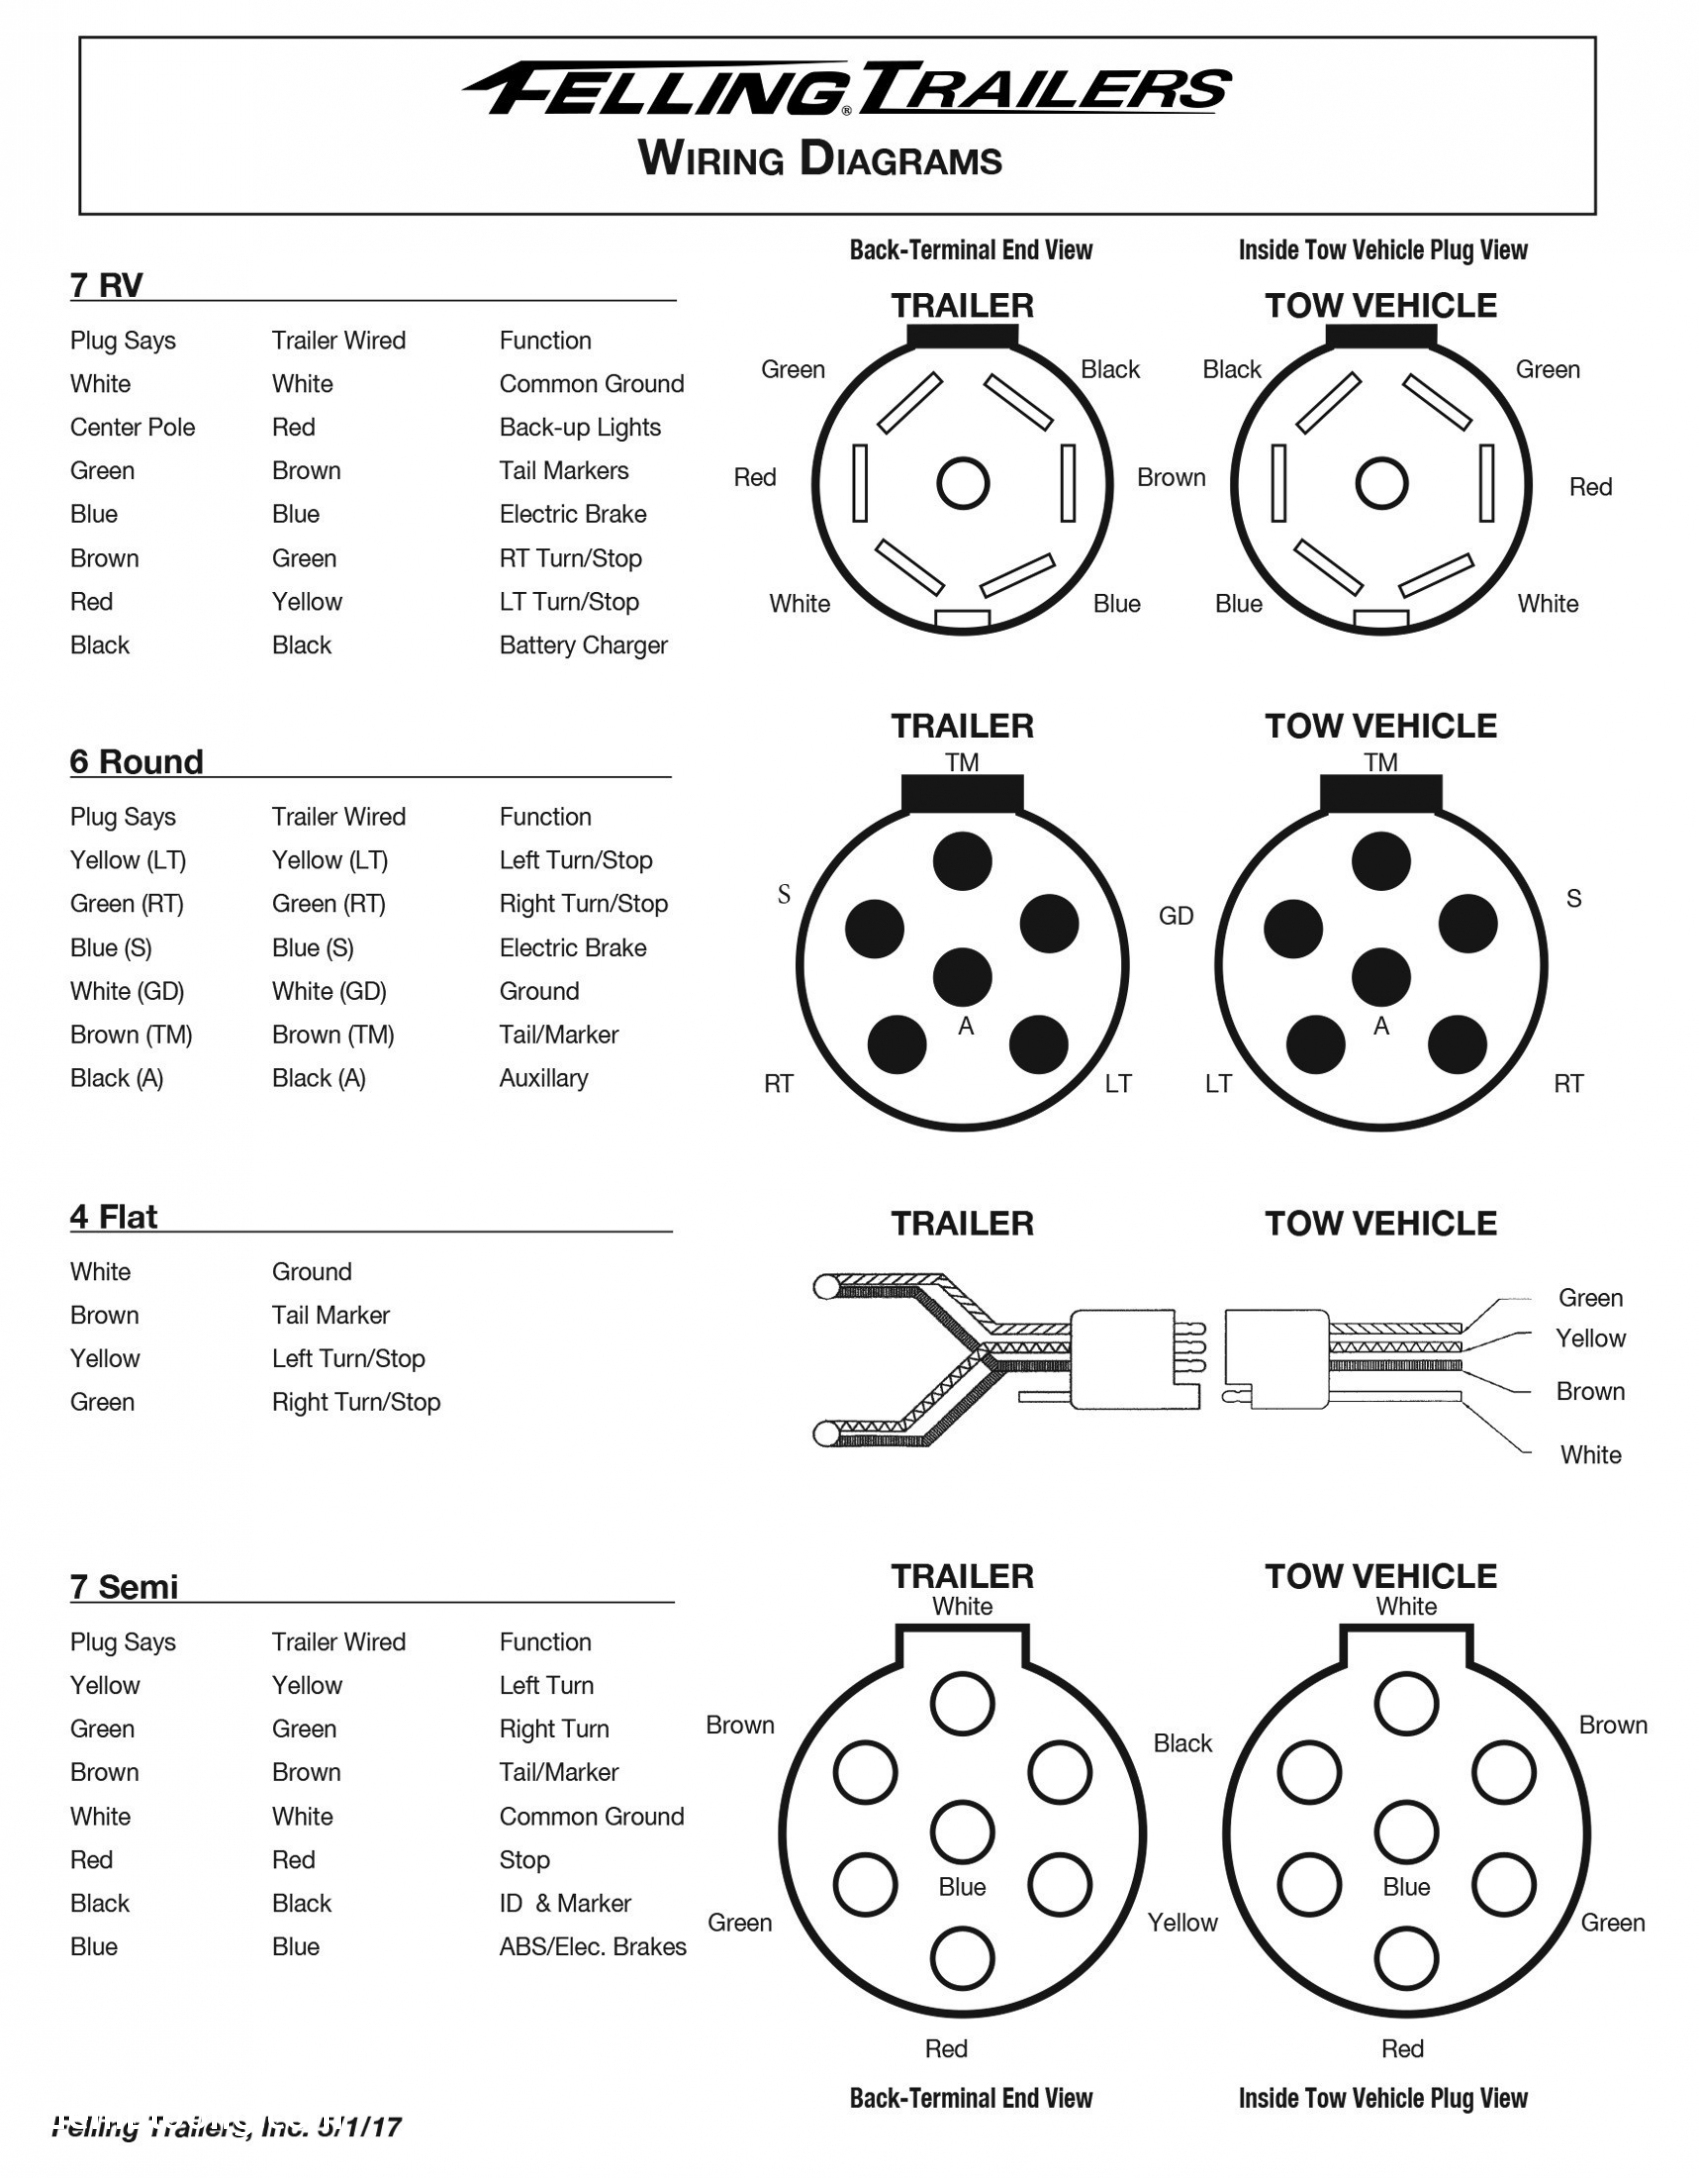 7 Way Trailer Wiring Diagram – 7 Wire Trailer Plug Diagram – Semi - Semi Trailer 7 Pin Wiring Diagram